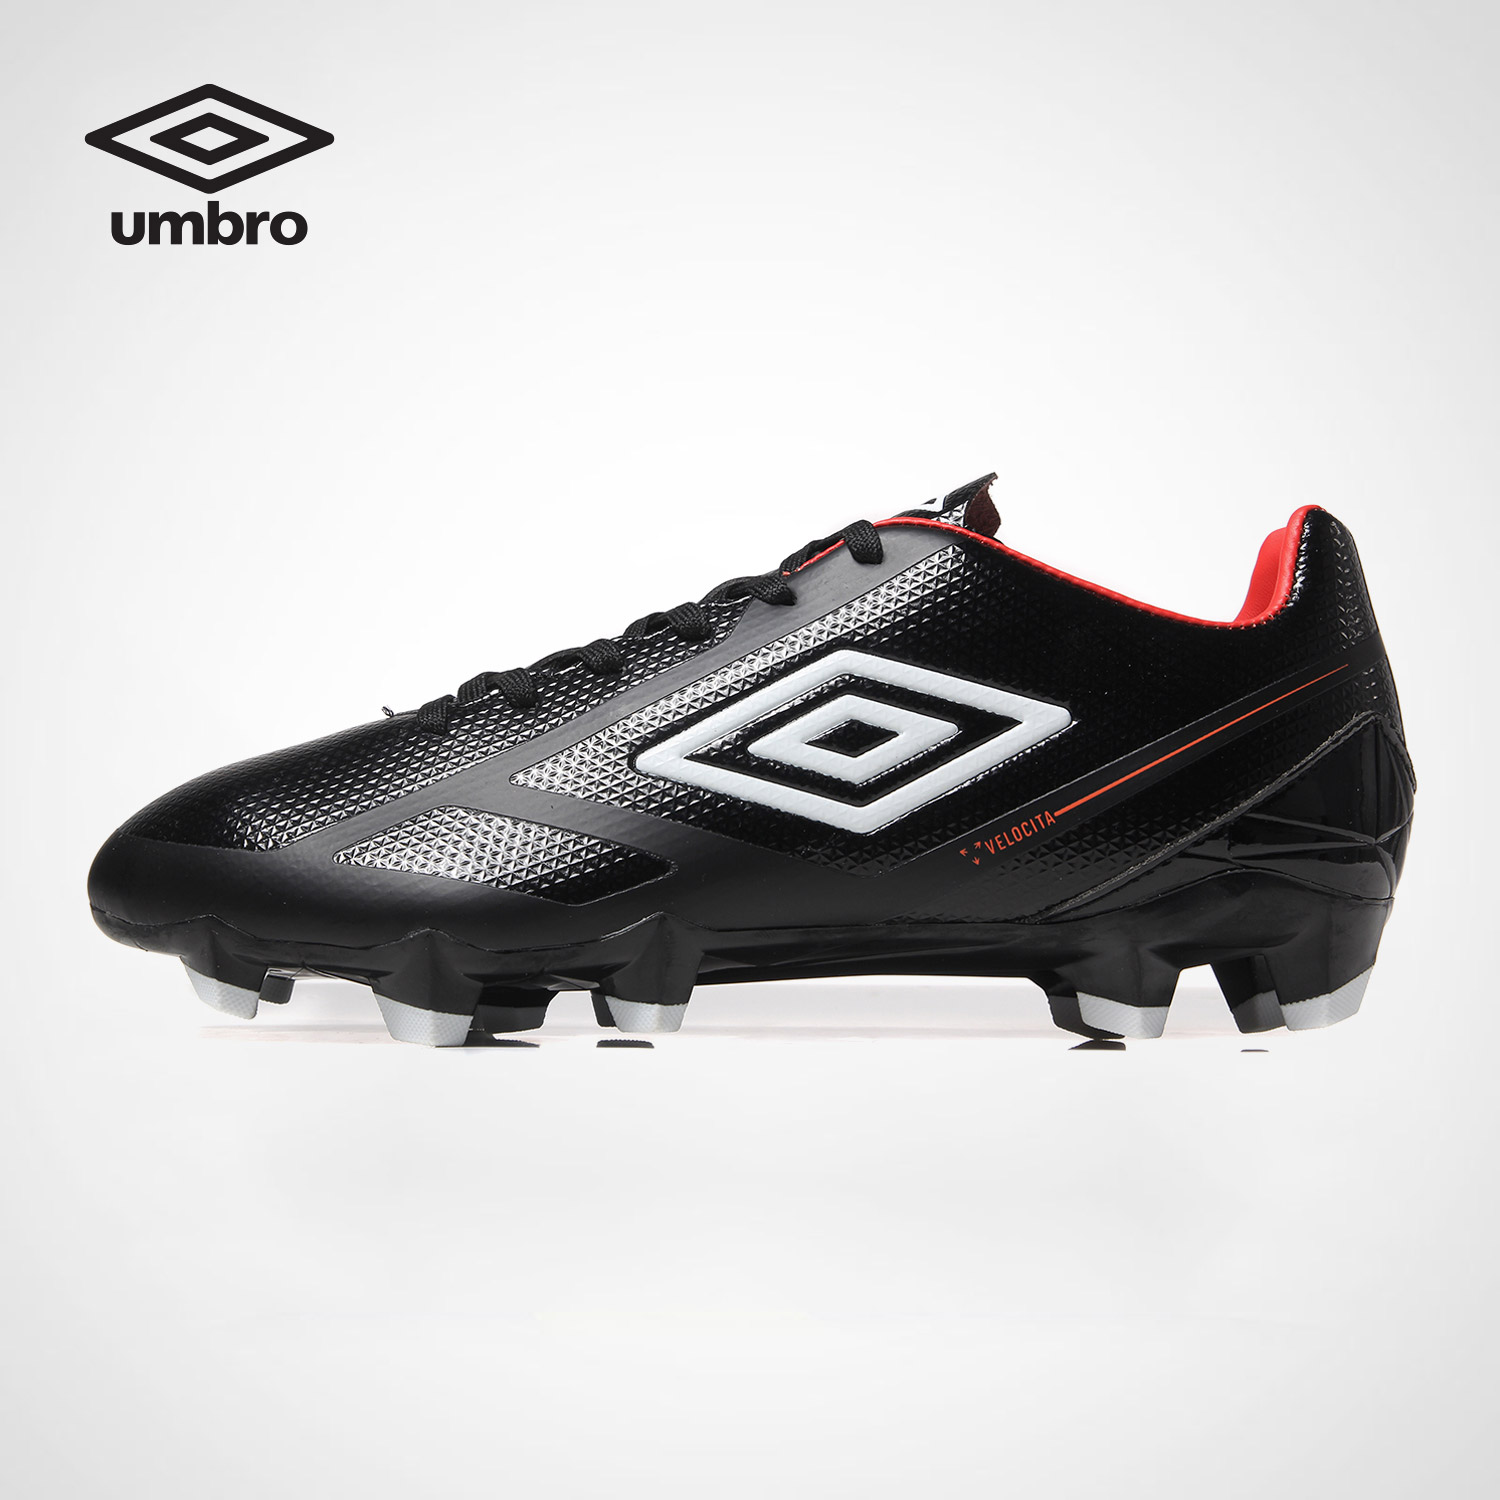 Umbro Men's Football Shoes HG Hobnail Artificial Turf Student Competition Training Football Boots Soccer Shoes UCB90127 dr eagle original superfly football boots man football shoes with ankle soccer boots footbal shoes sock size 38 45 sneakers